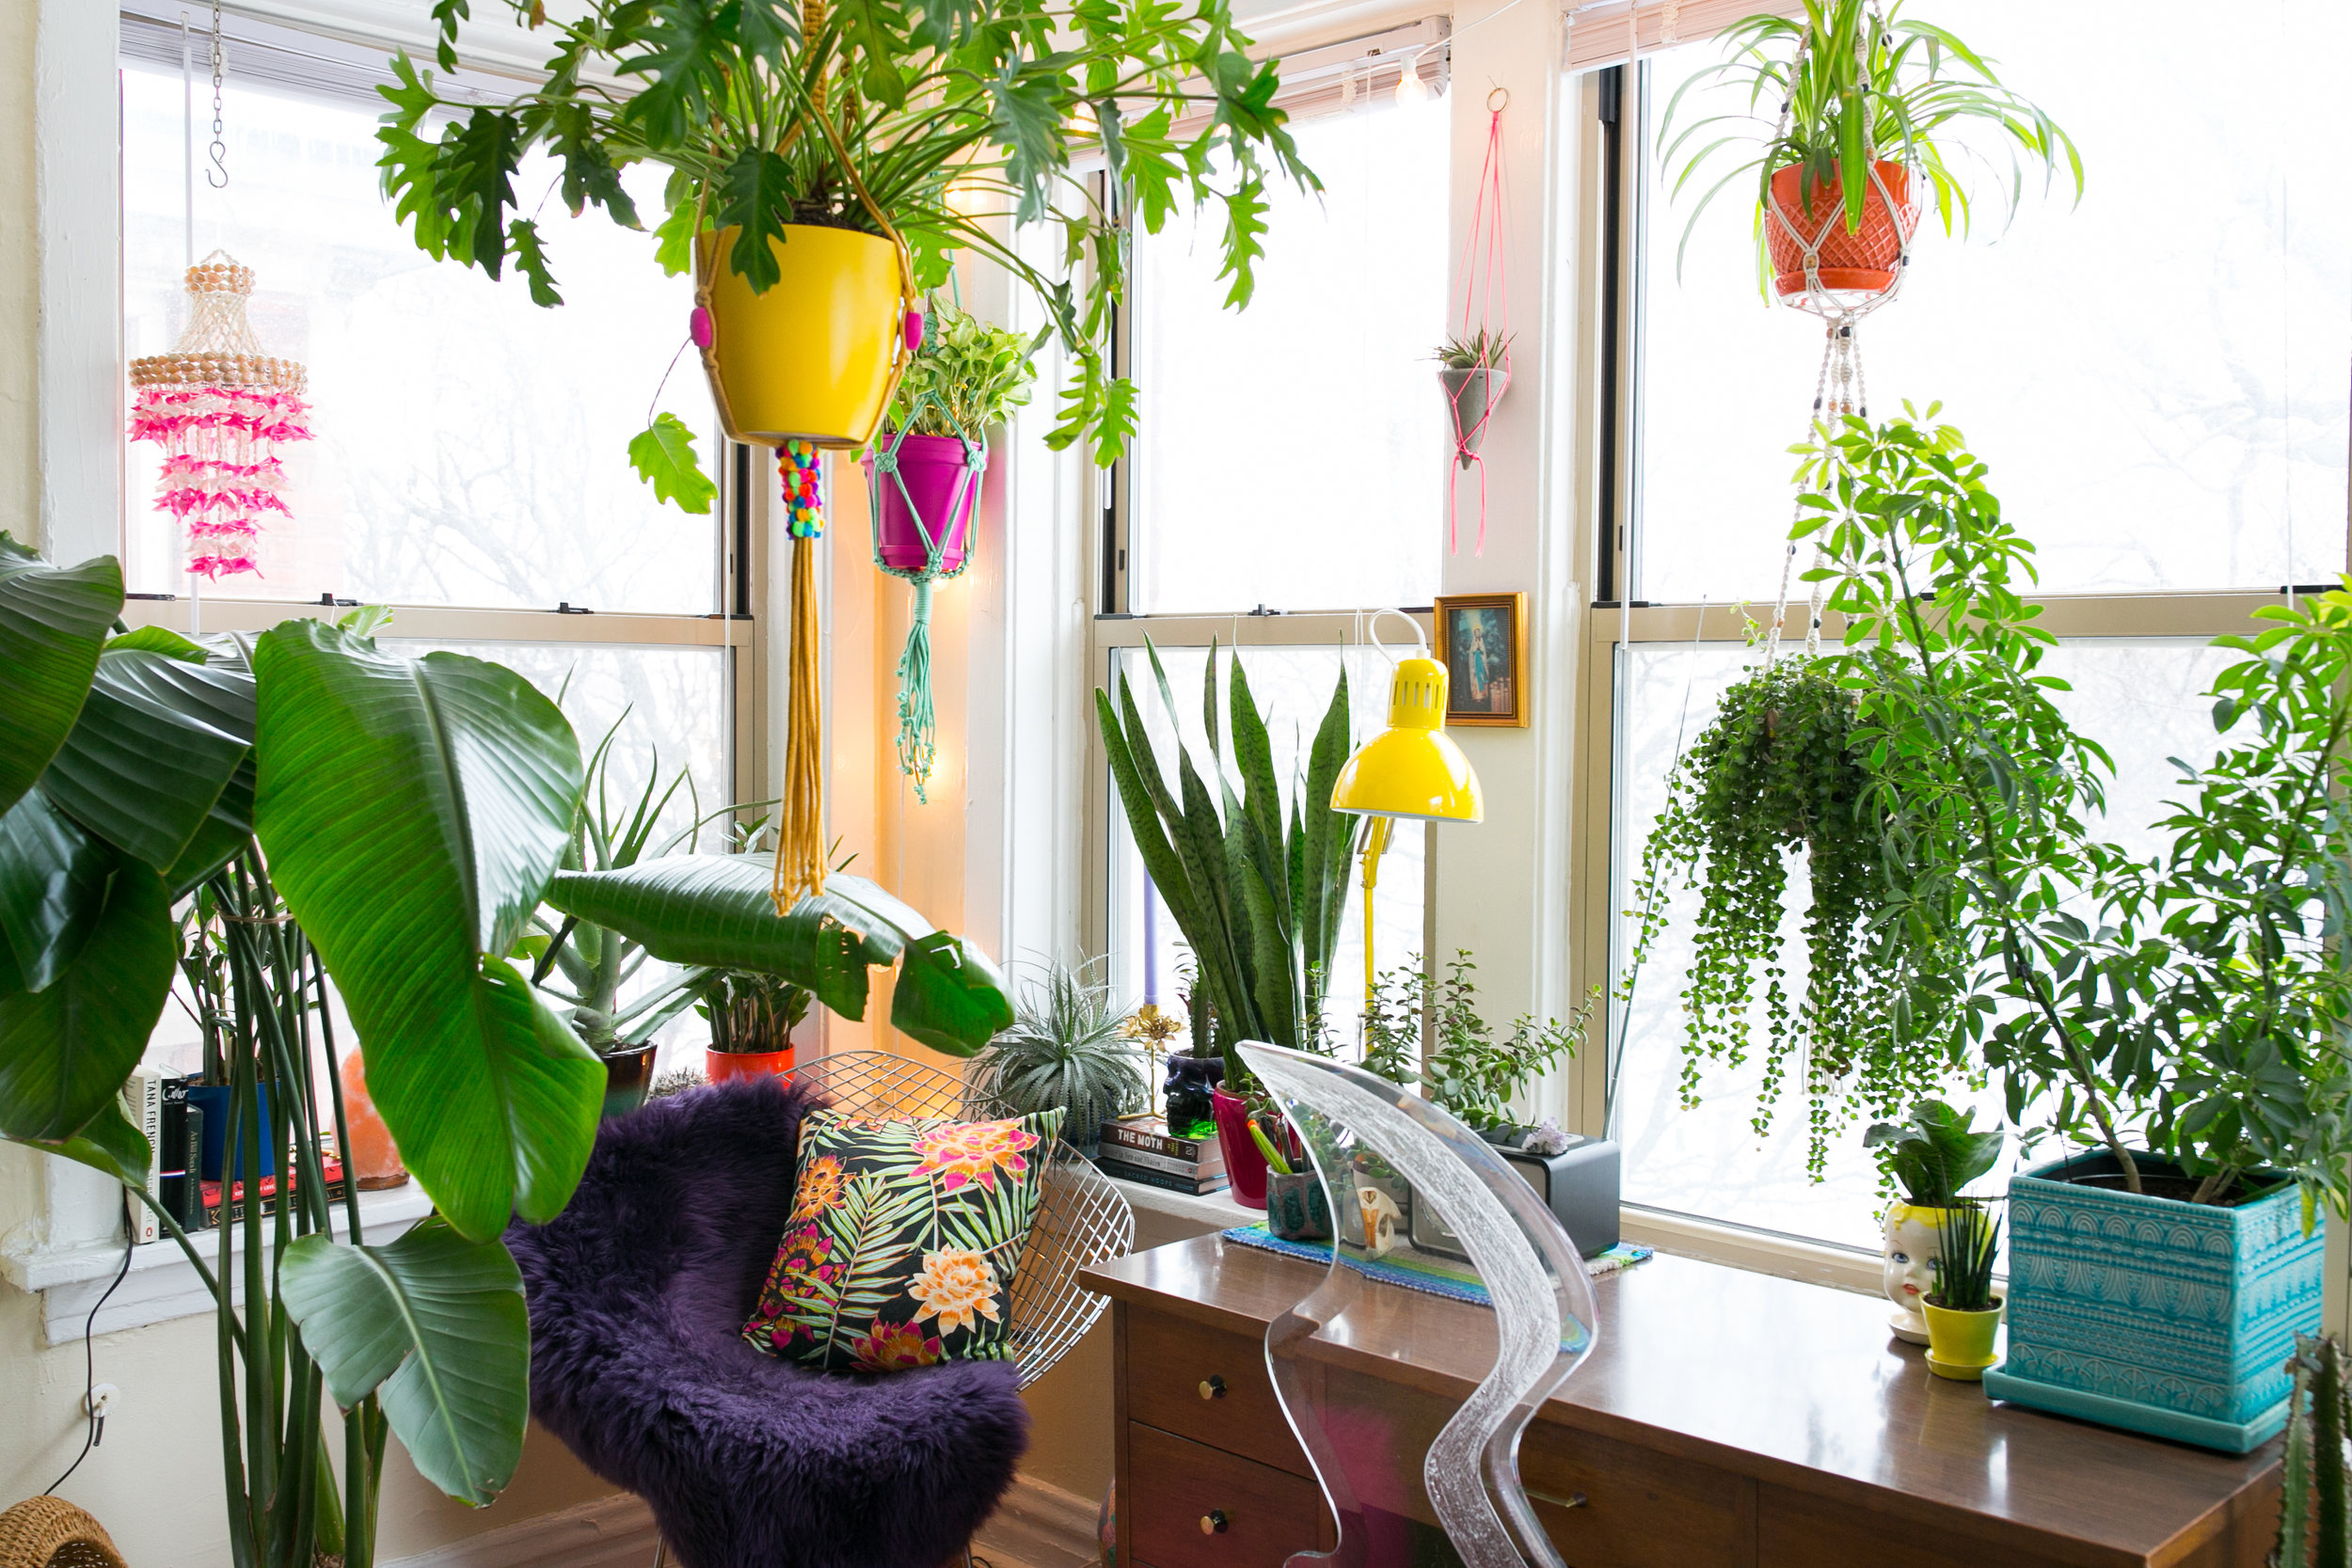 House Tours for Apartment Therapy